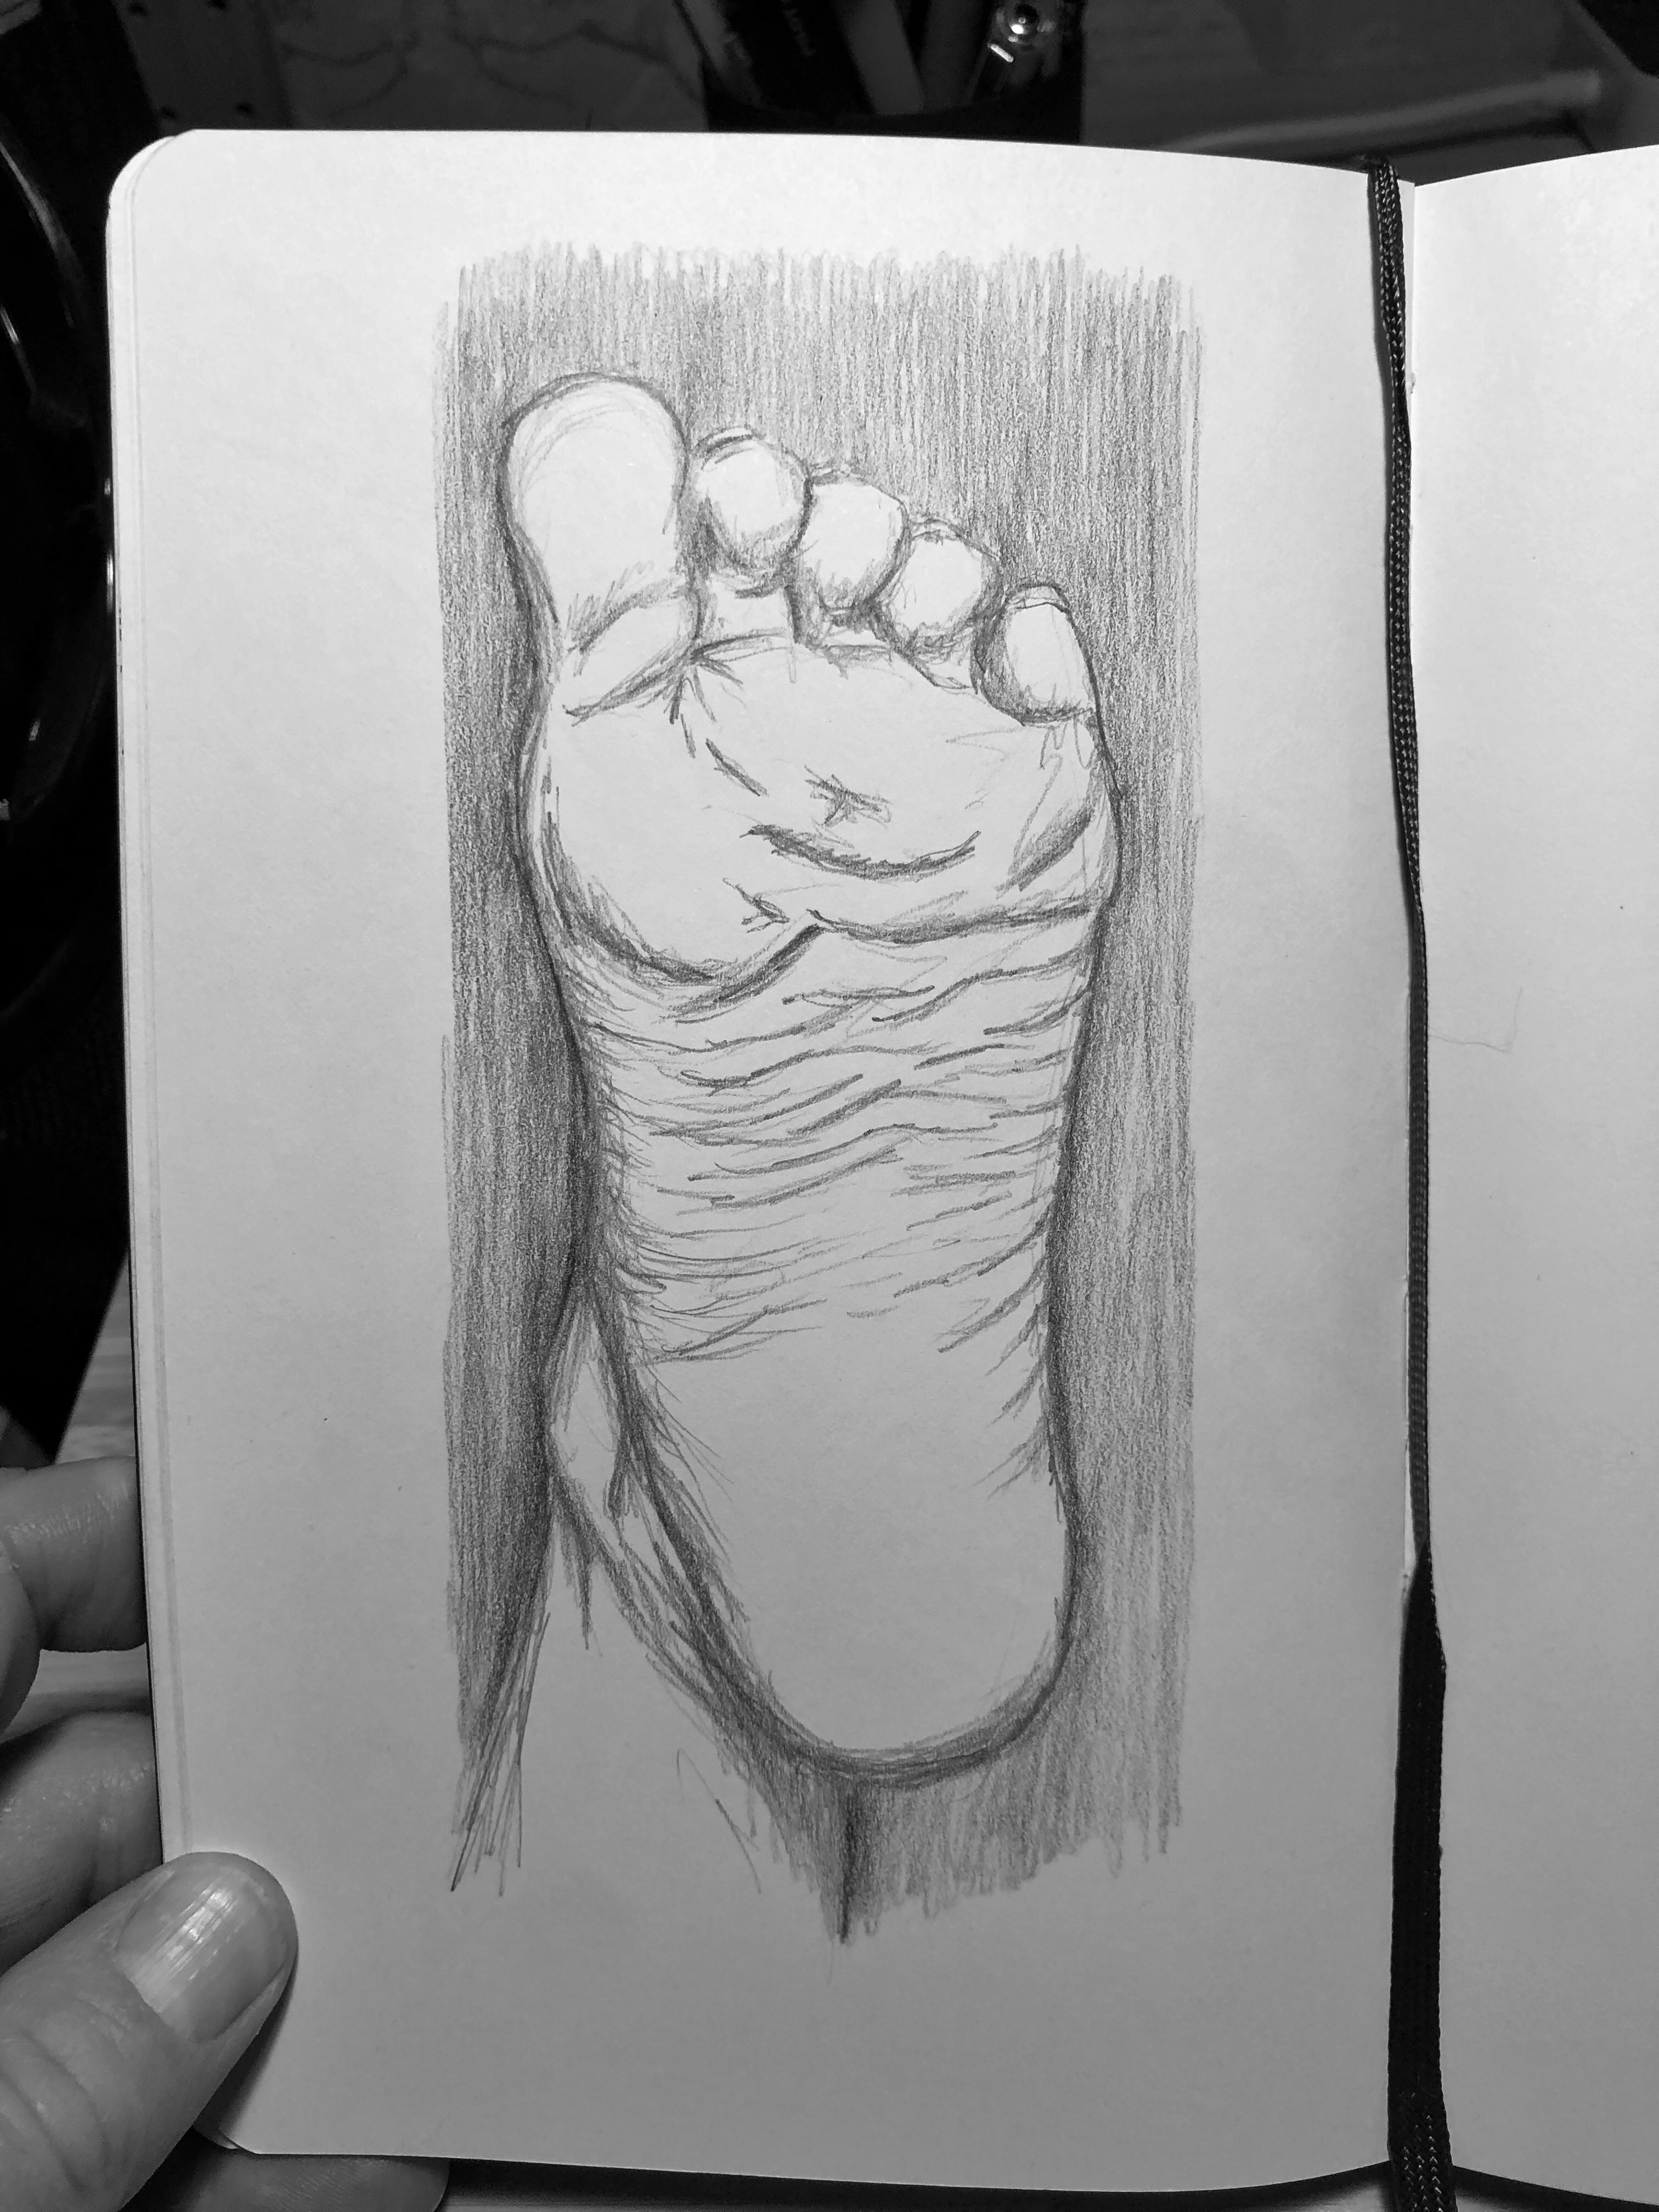 Drawing of the bottom of a foot stretched upwards in the air.